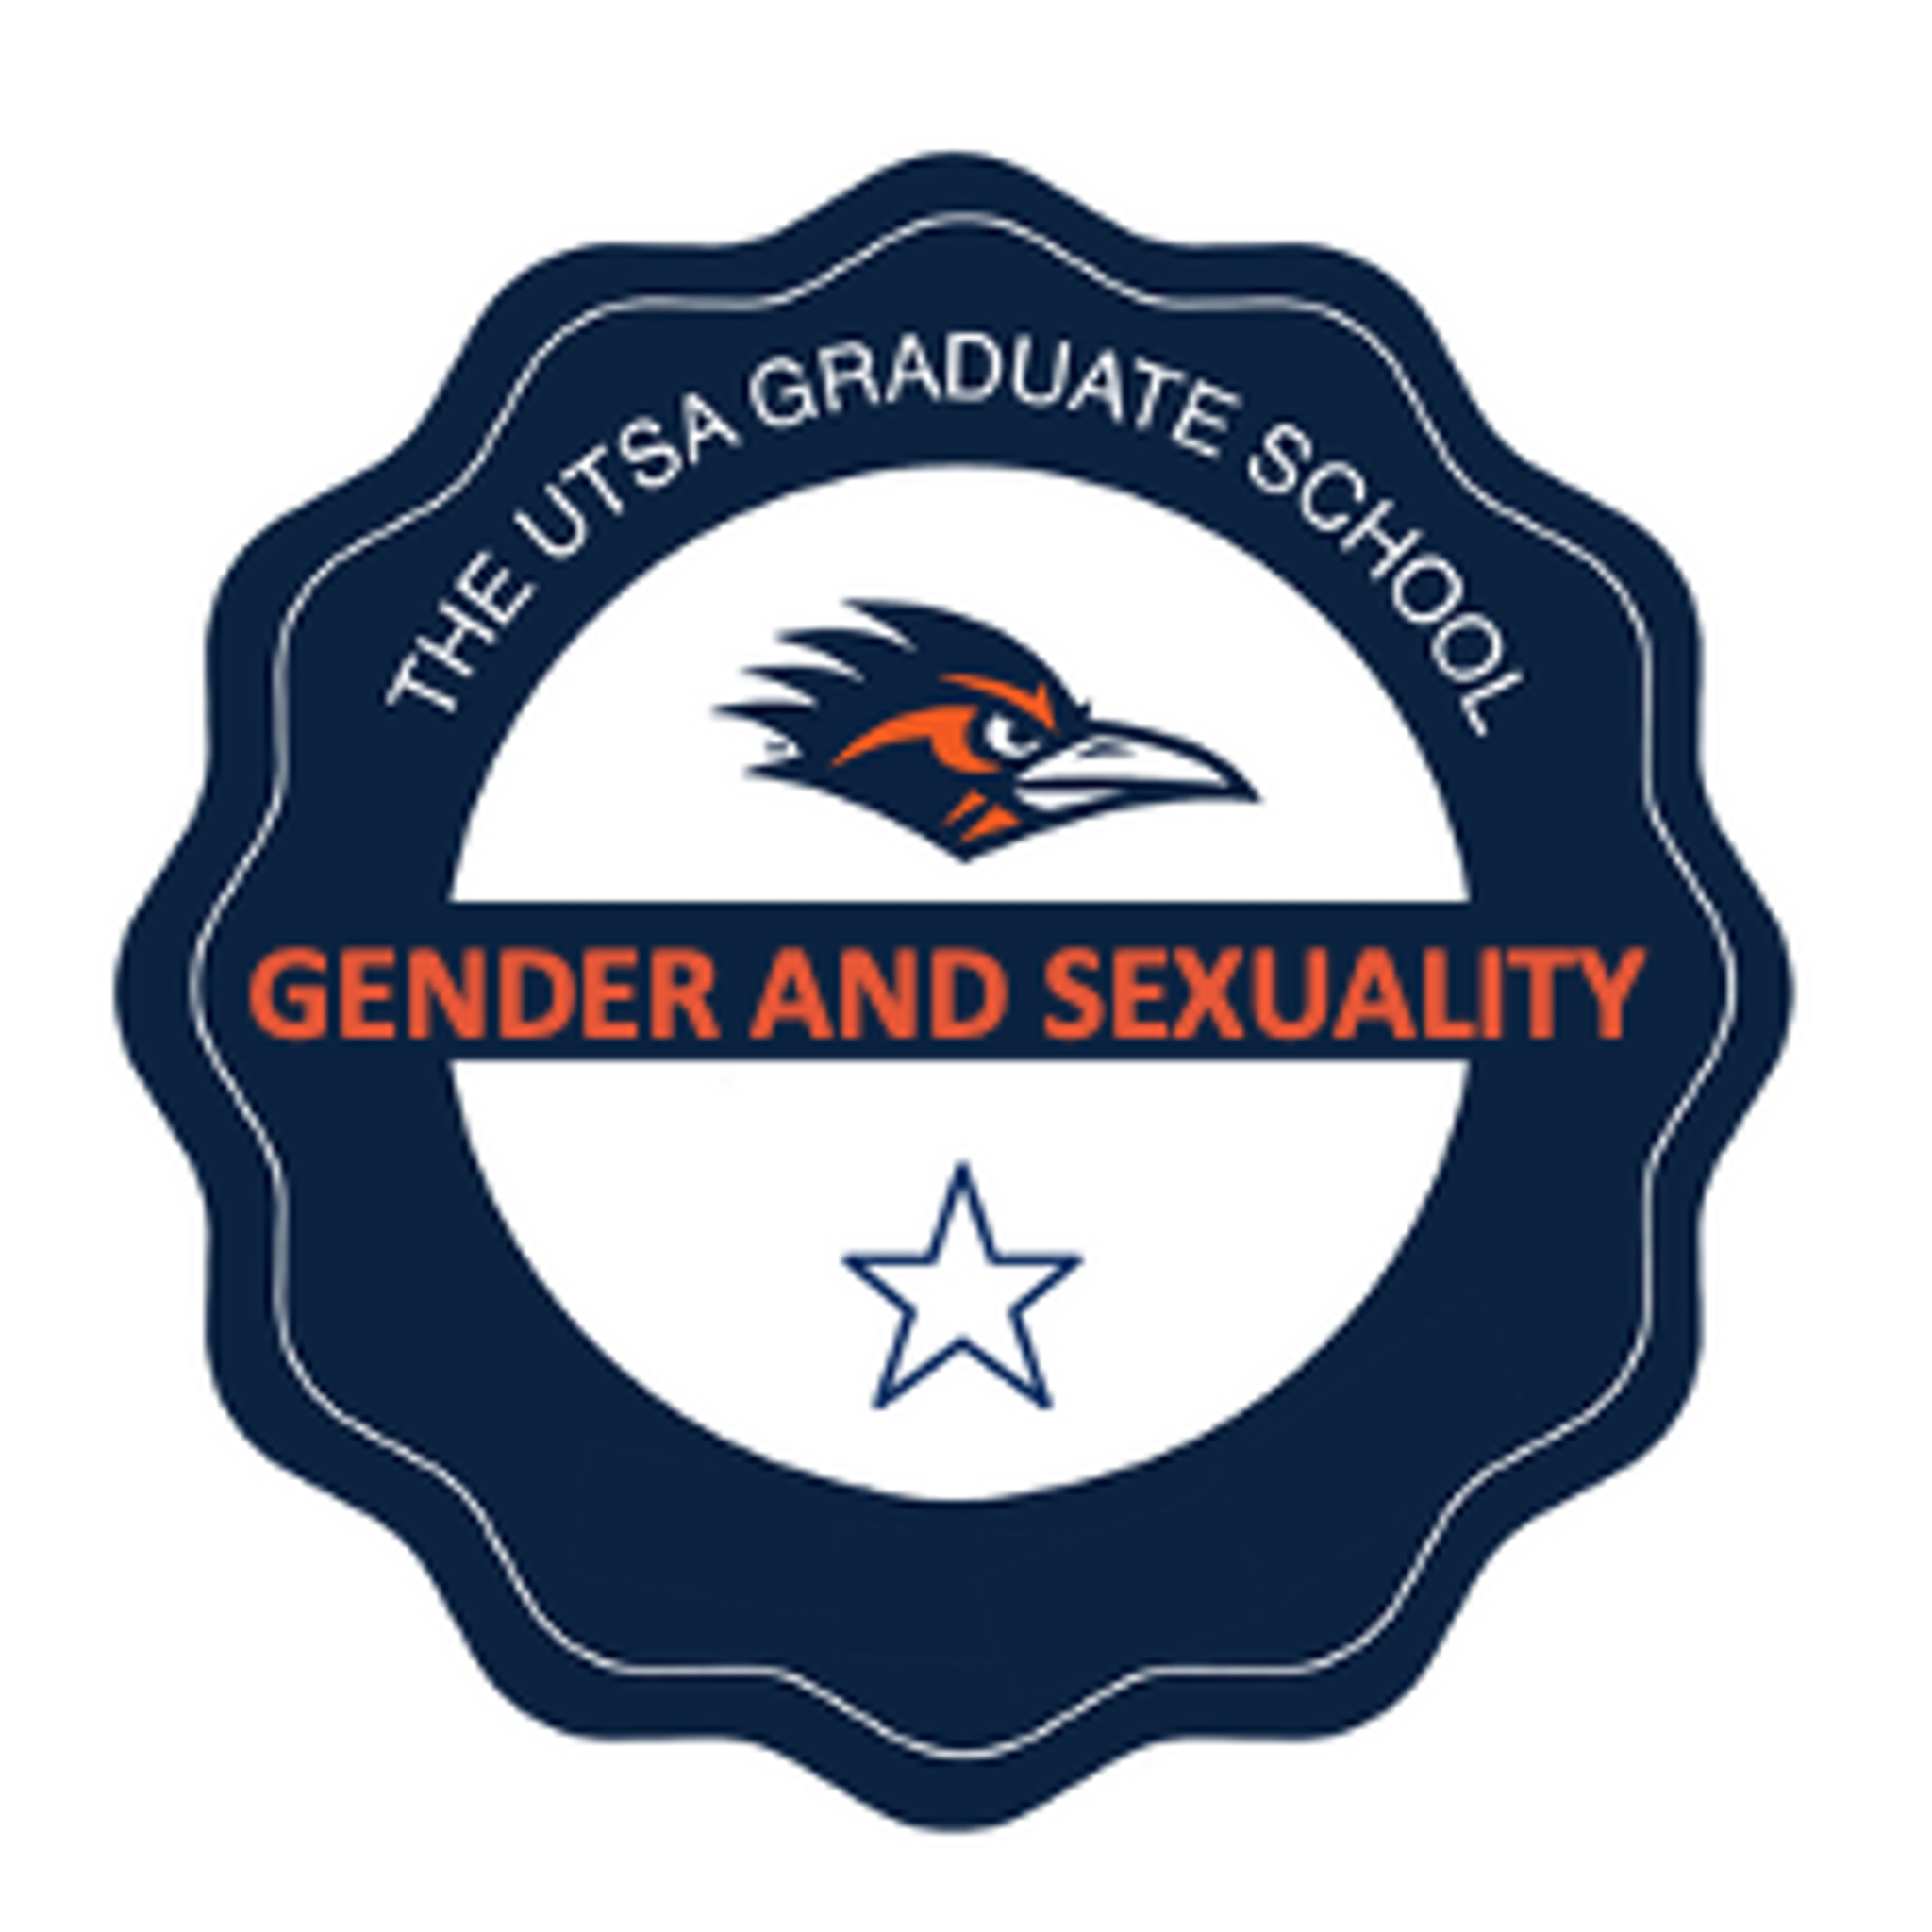 EQUITY & INCLUSIVITY: Gender and Sexuality in Higher Education